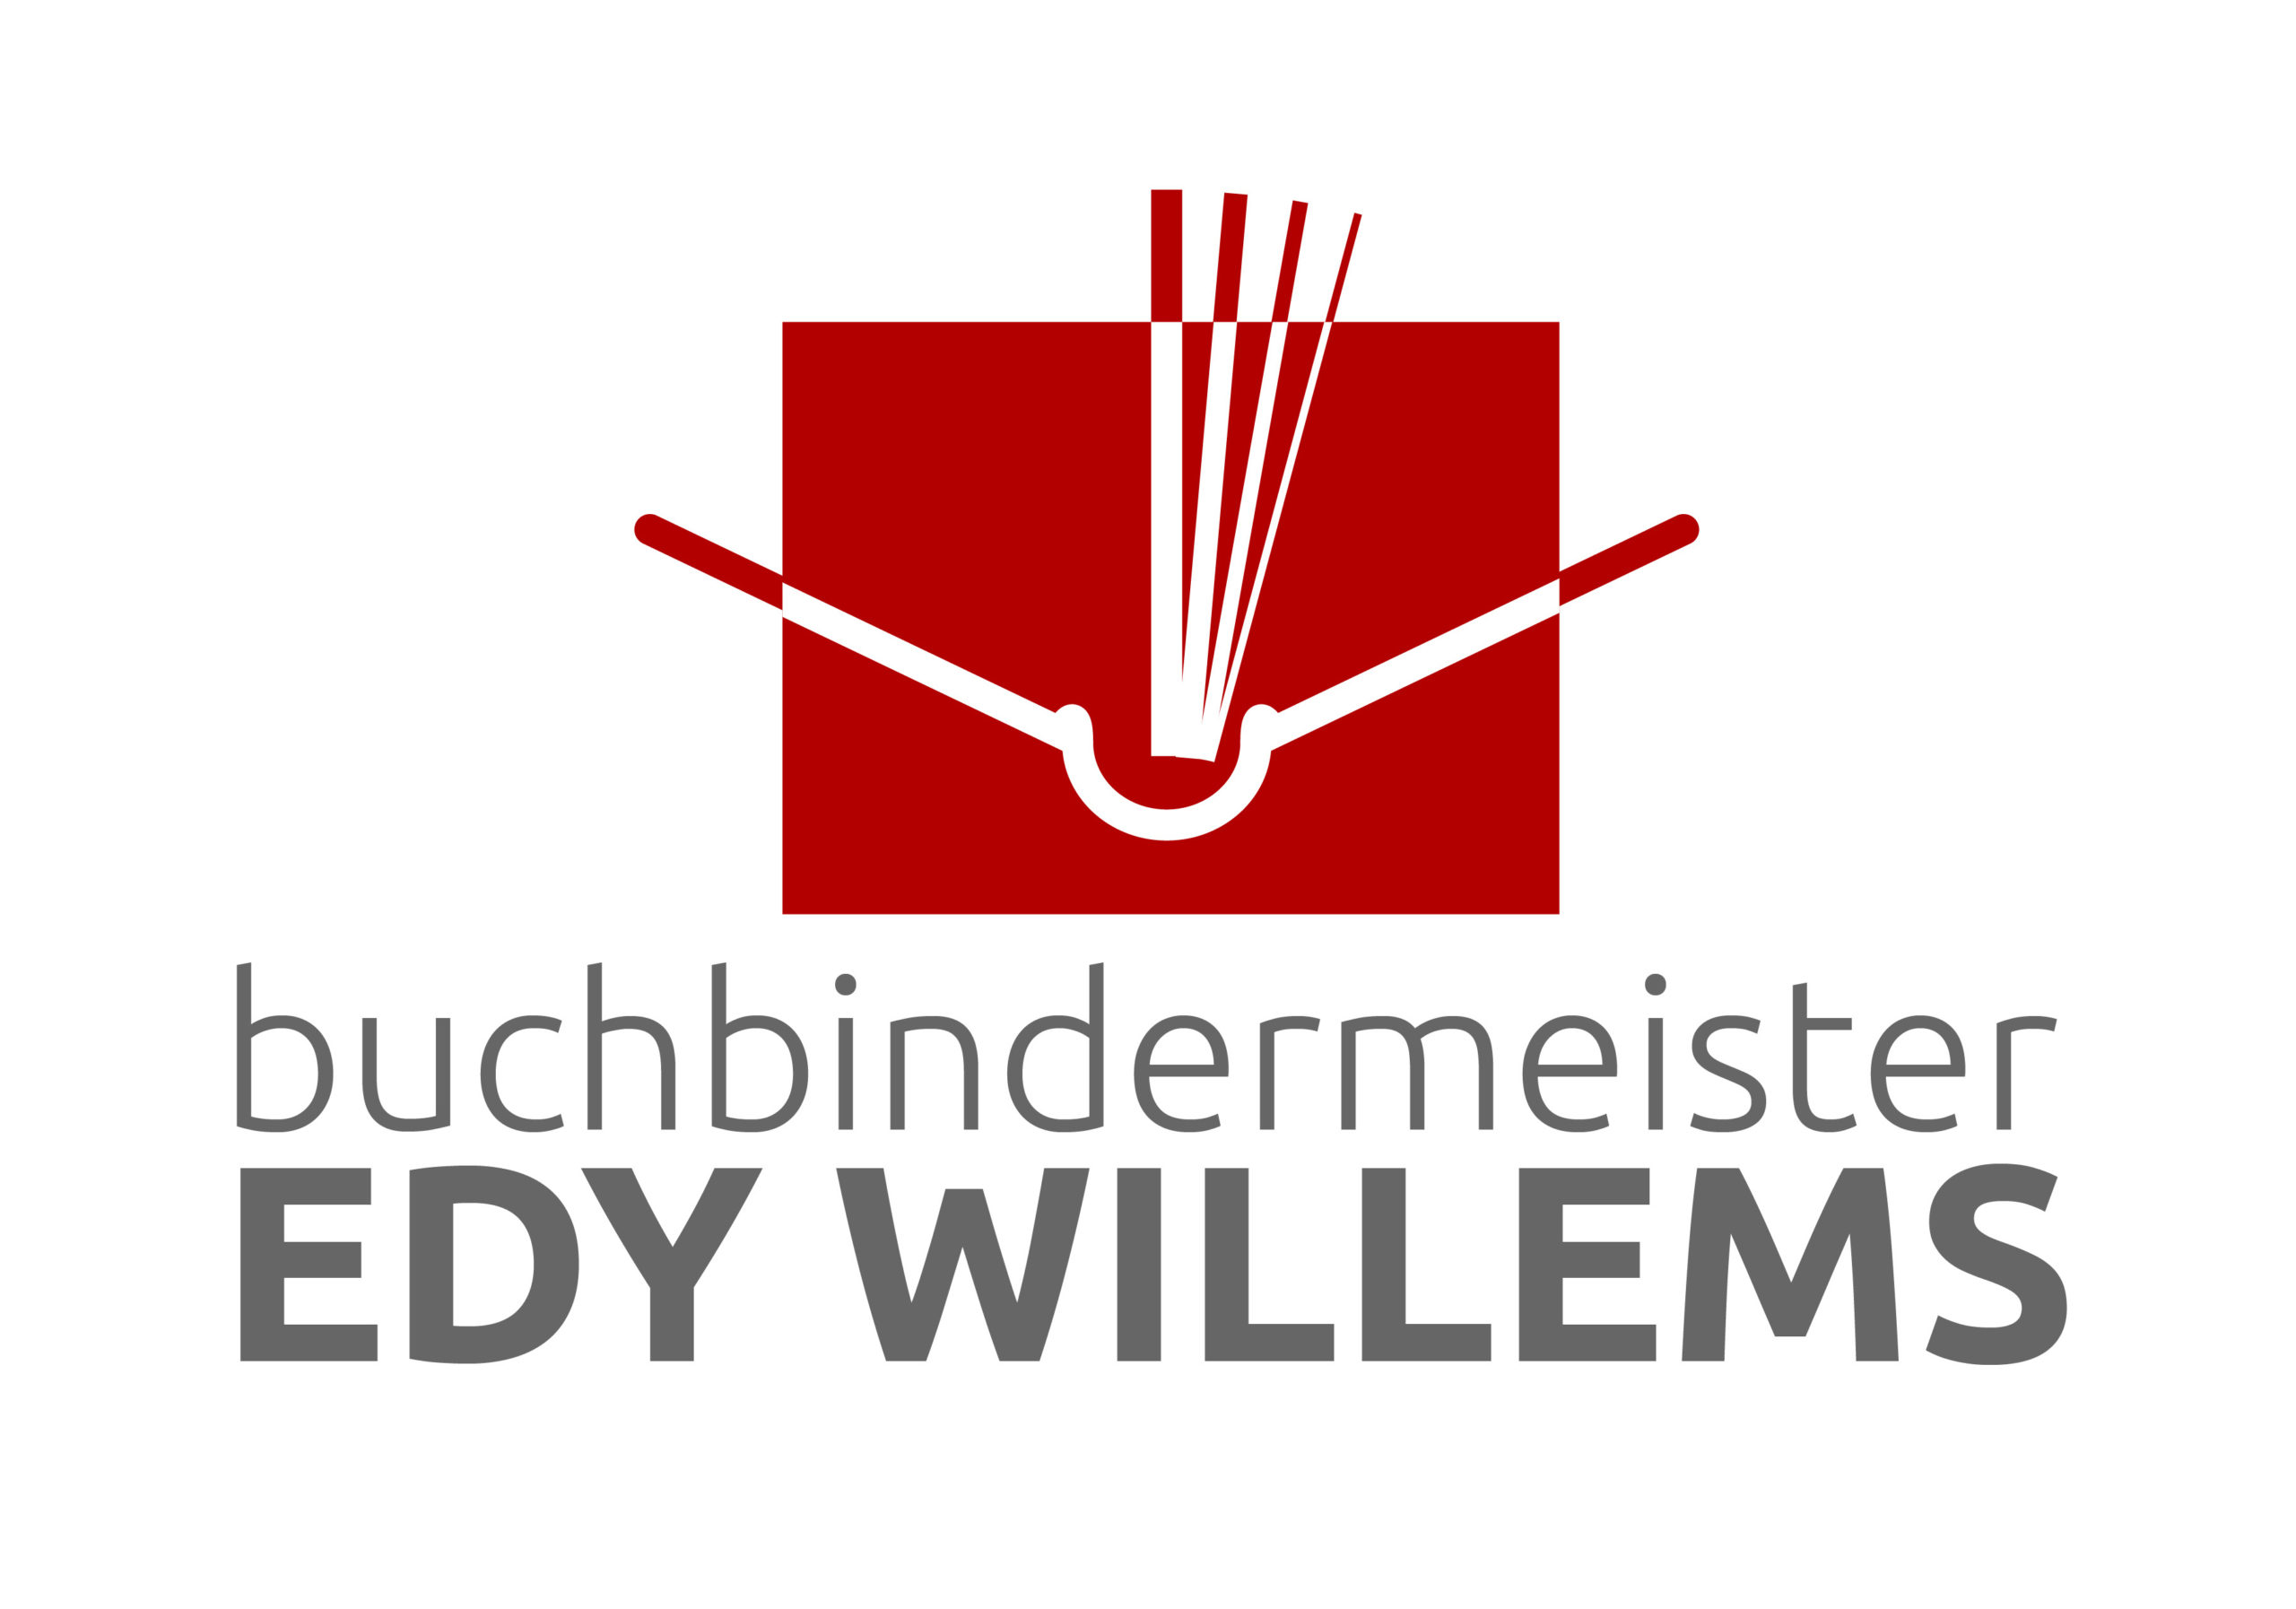 Edy Willems Buchbindermeister